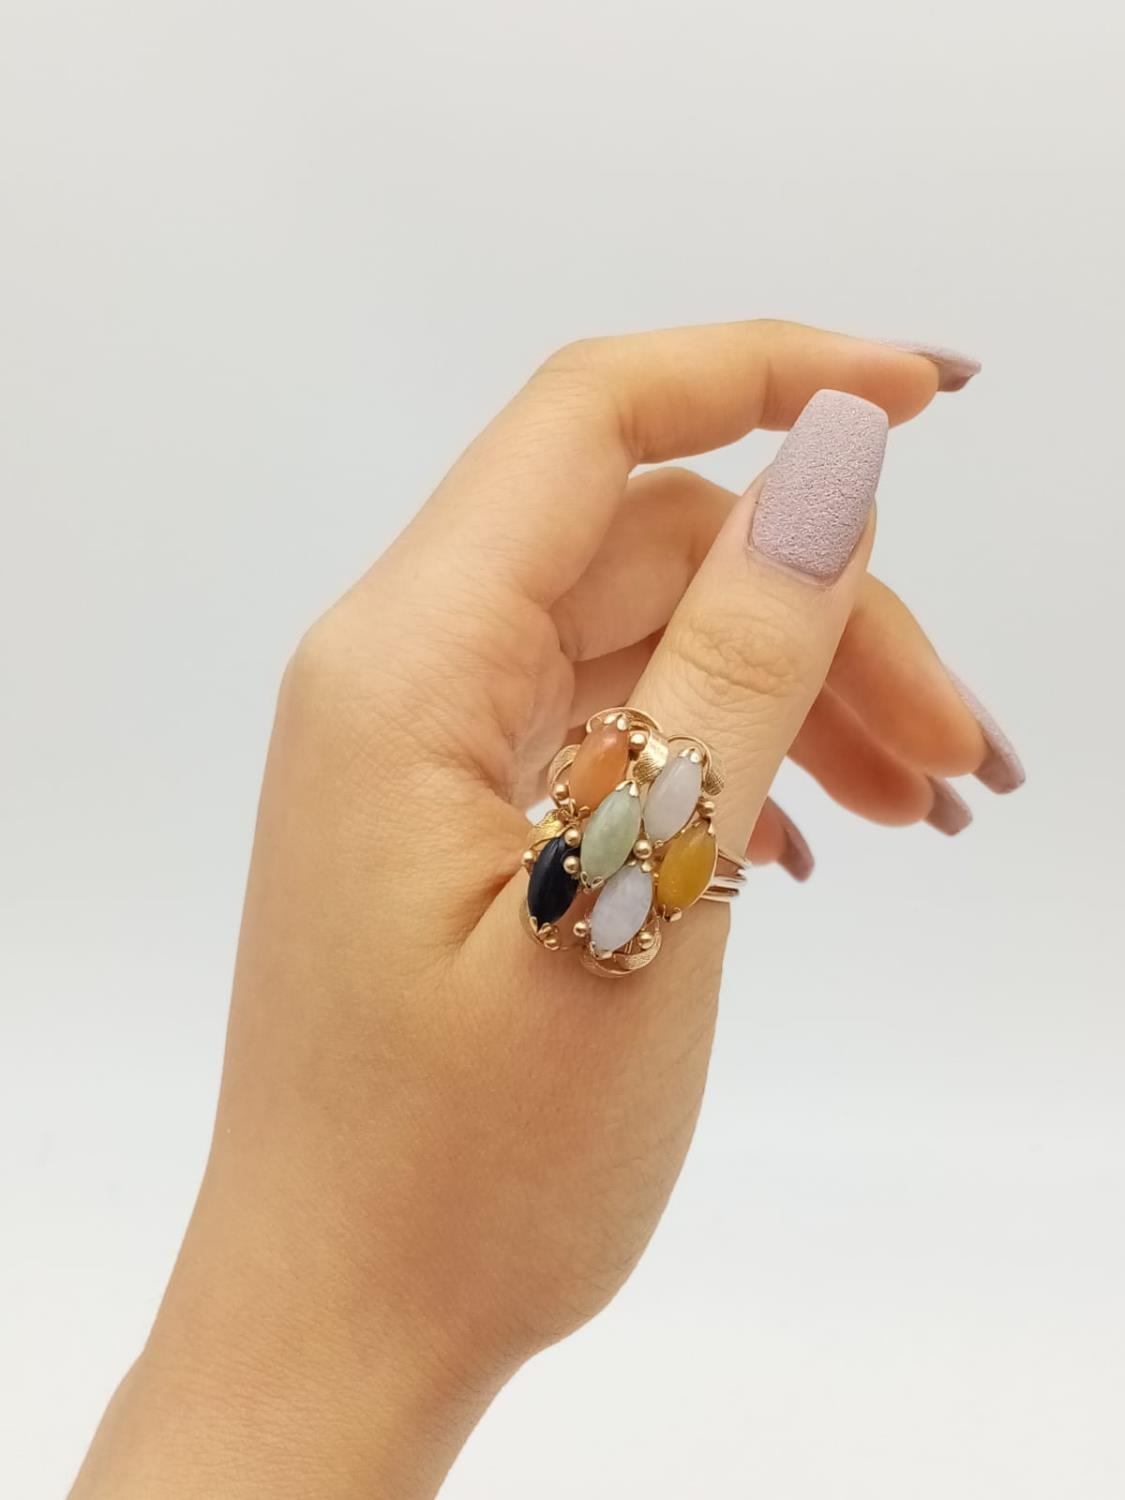 14k vintage yellow gold multi stone set, weight 7.9g and size P - Image 5 of 7